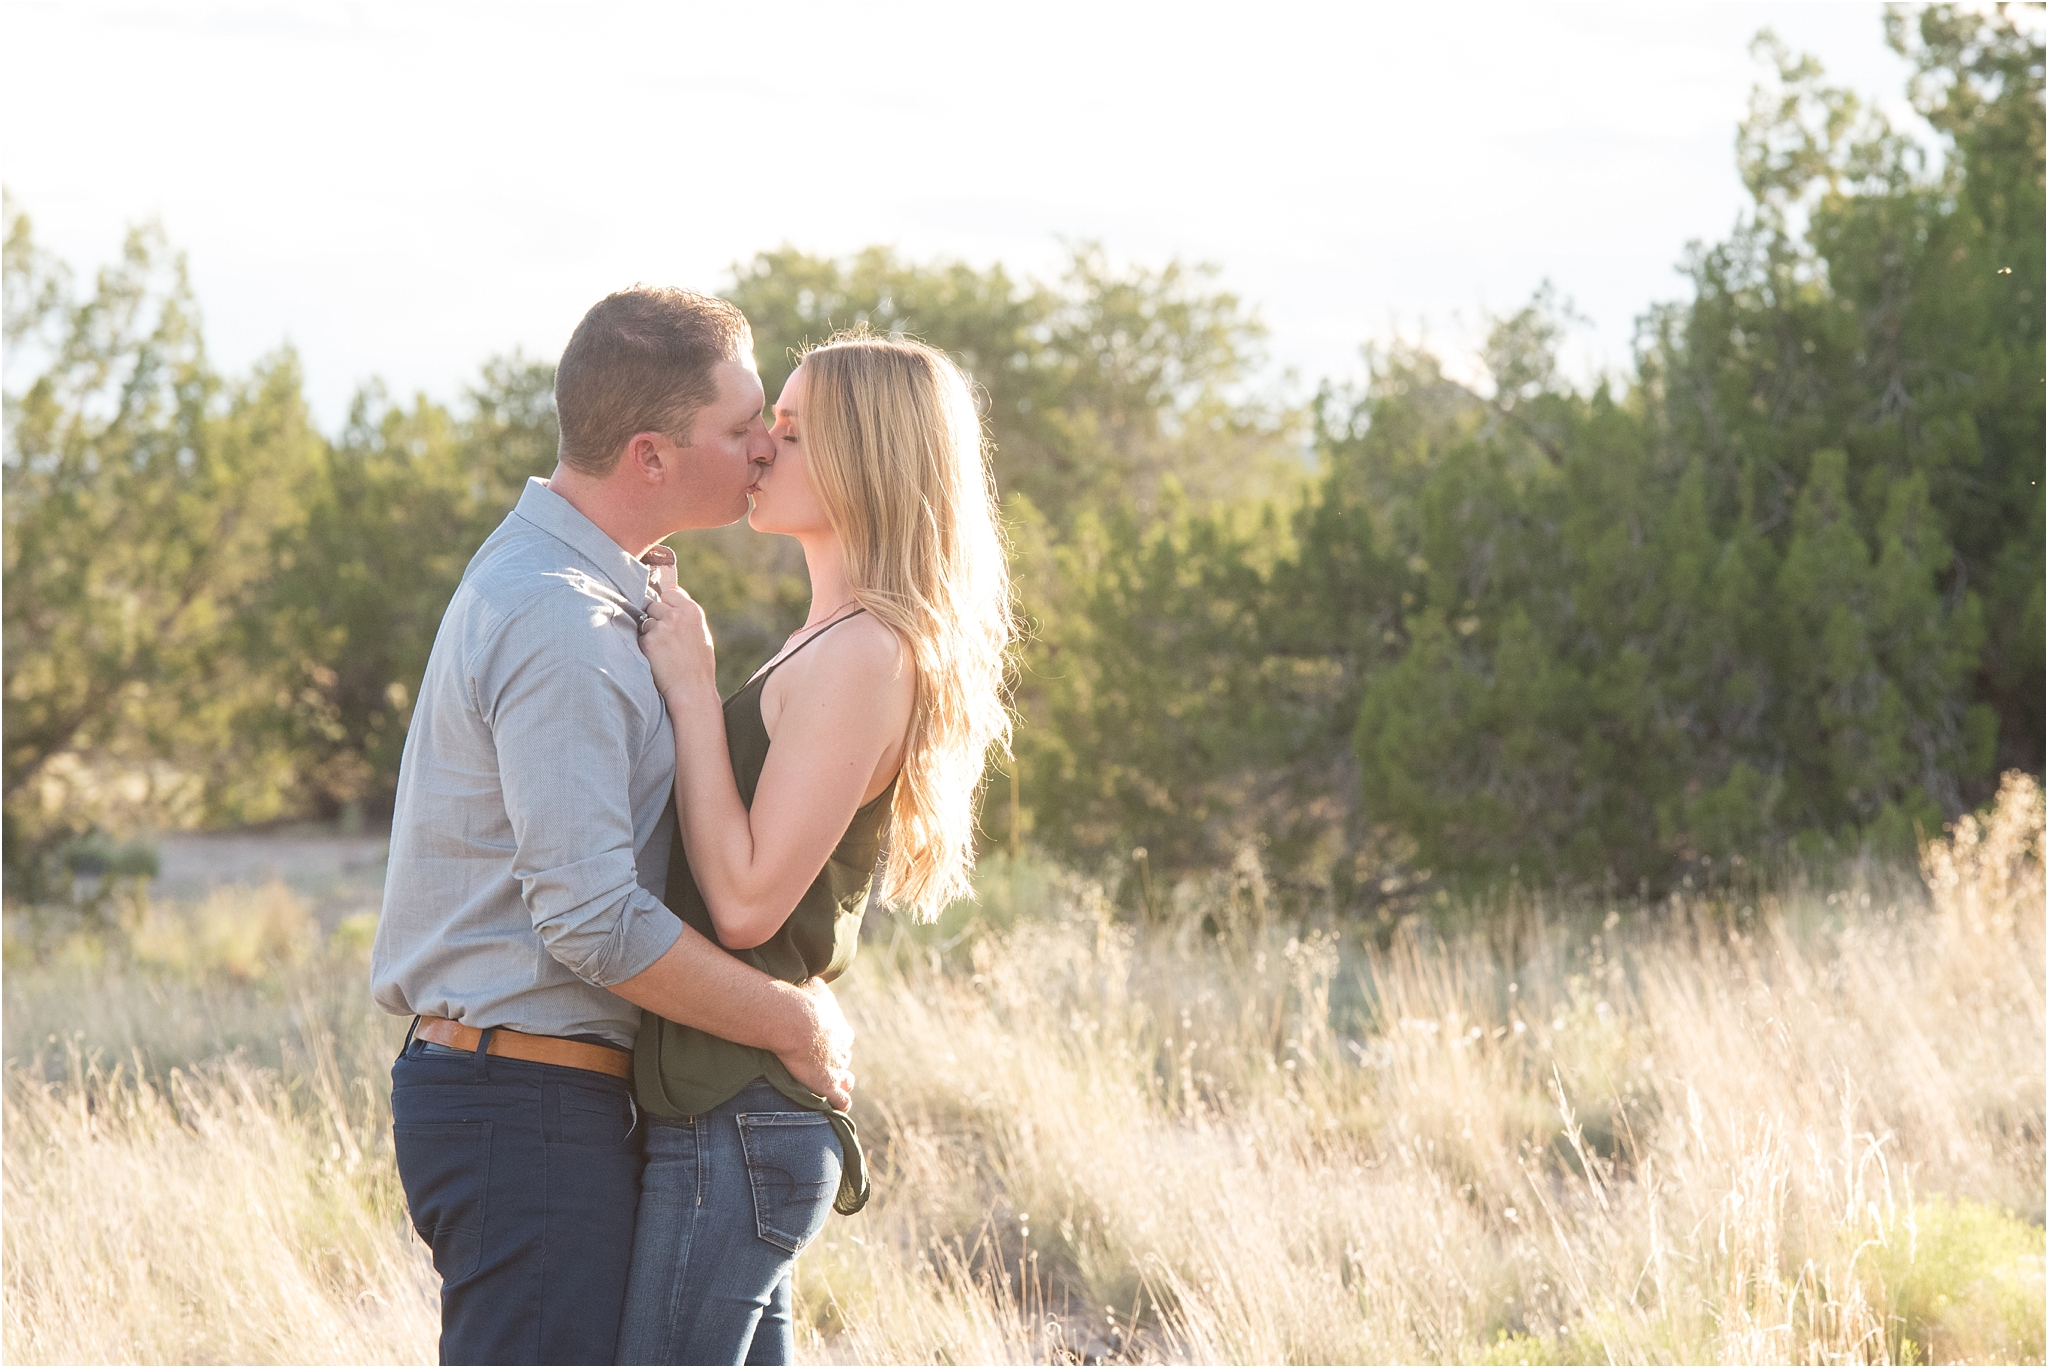 kayla kitts photography - albuquerque wedding photographer - casas de suenos - new mexico wedding_0083.jpg